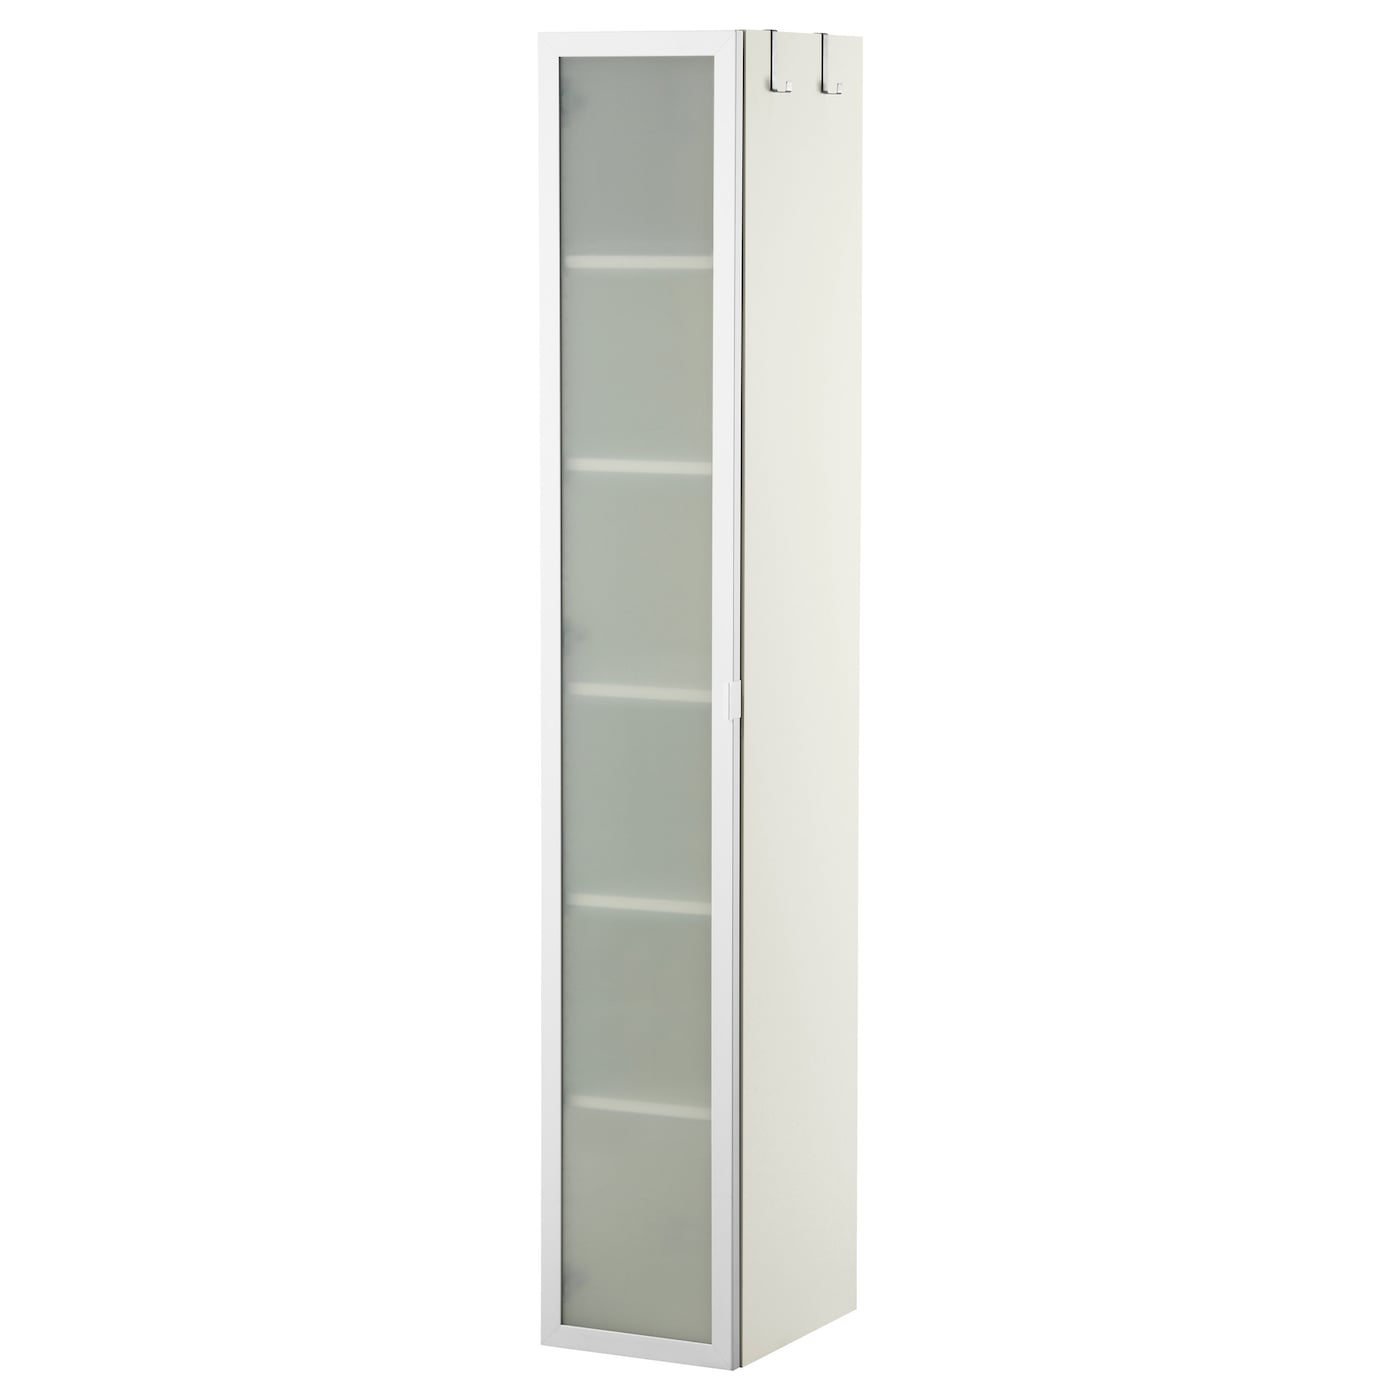 IKEA LILLÅNGEN high cabinet A good solution if you are short of space.